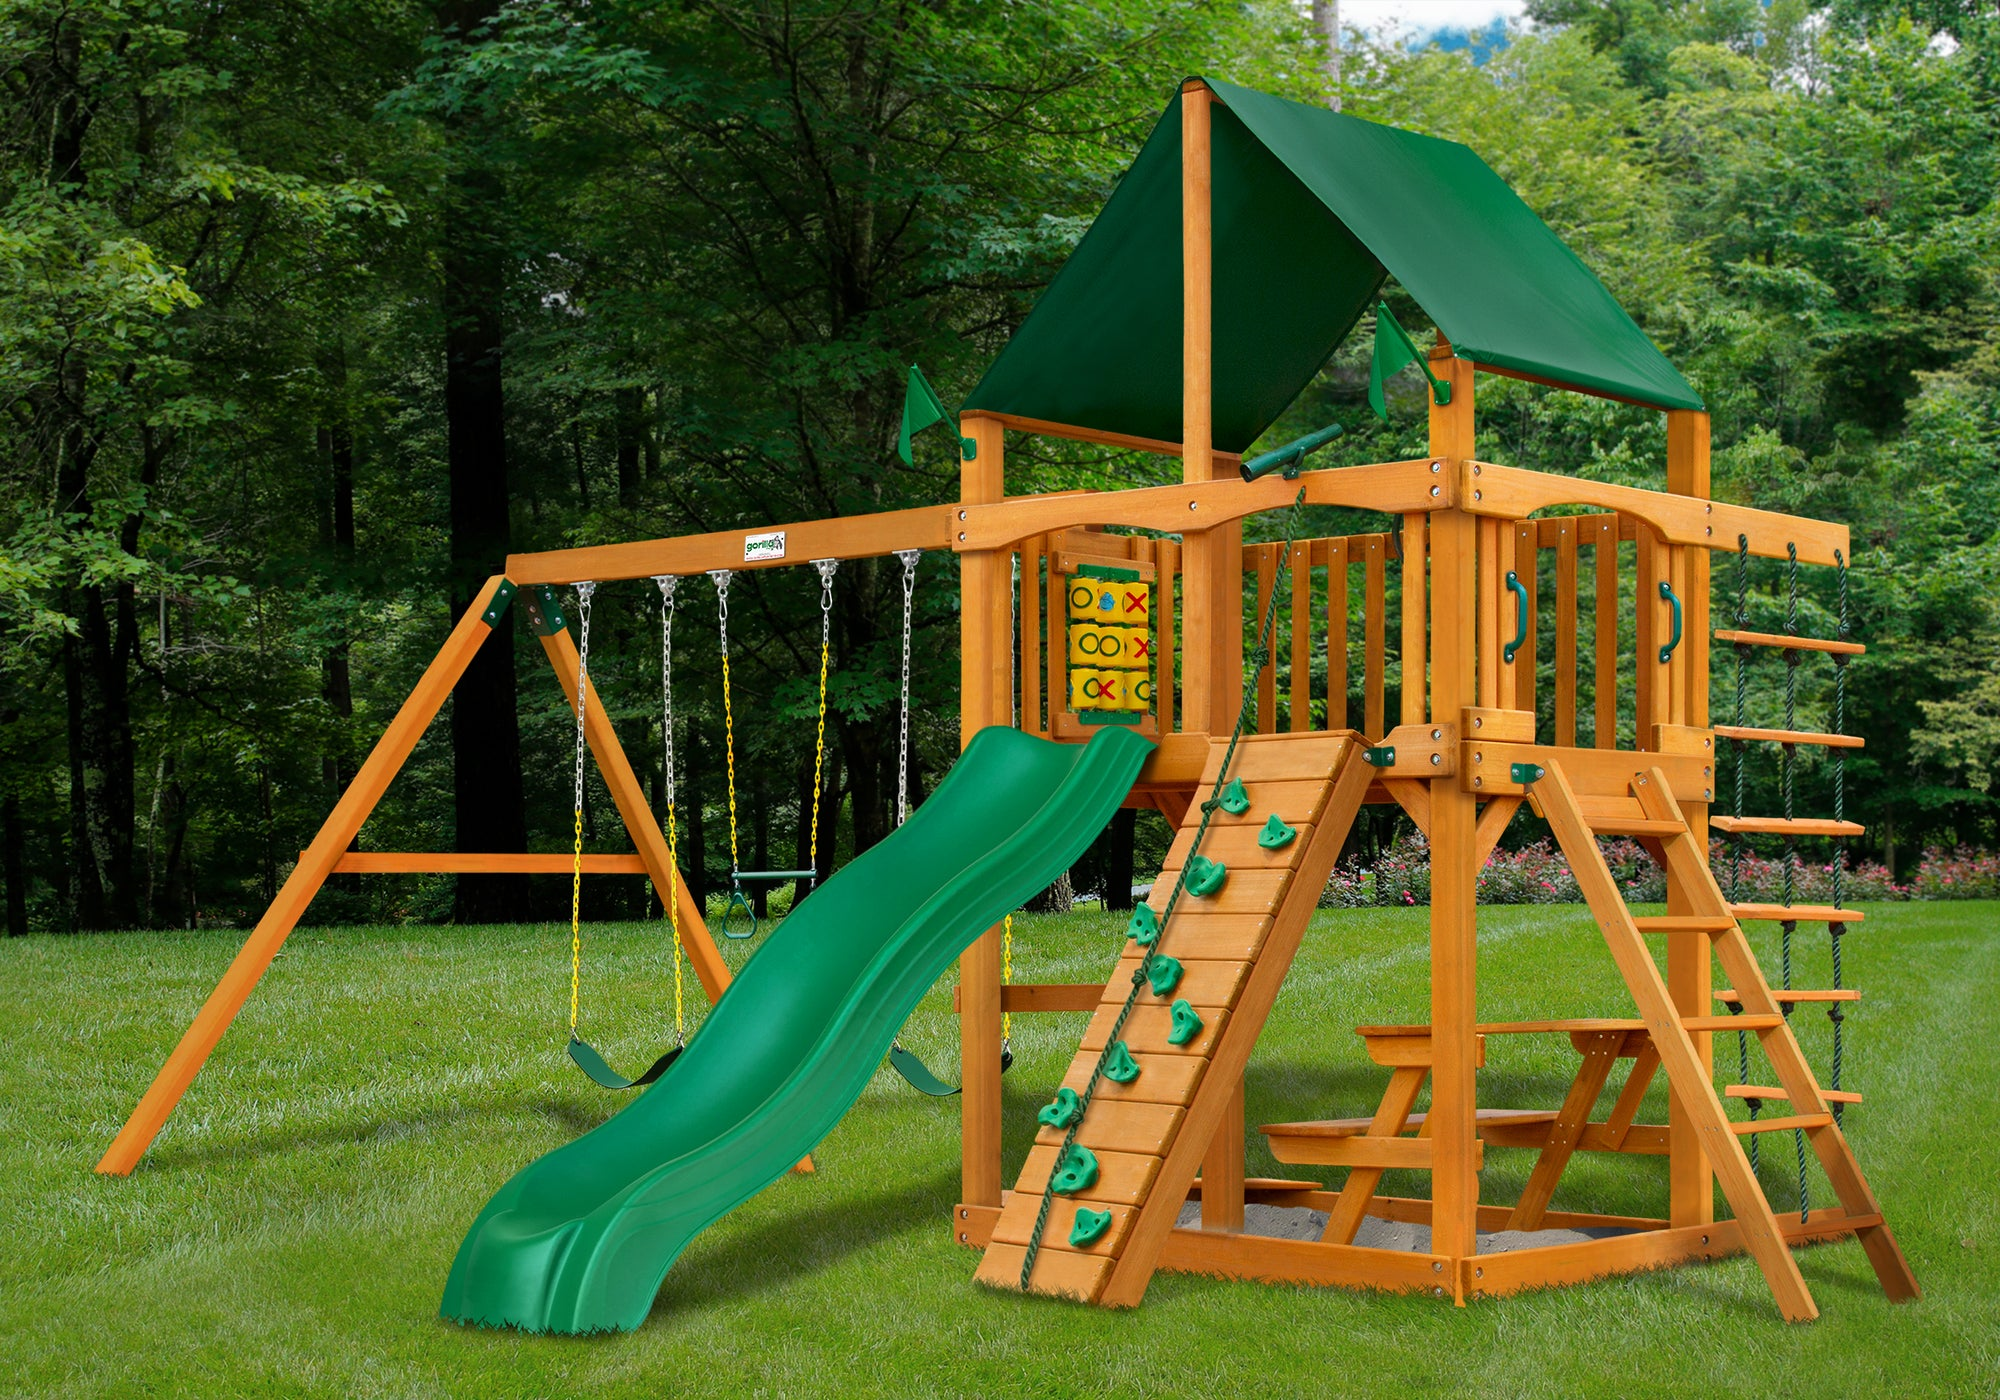 Gorilla Playsets Chateau Sunbrella Canvas Forest Green Swing Set - Swing Set Paradise